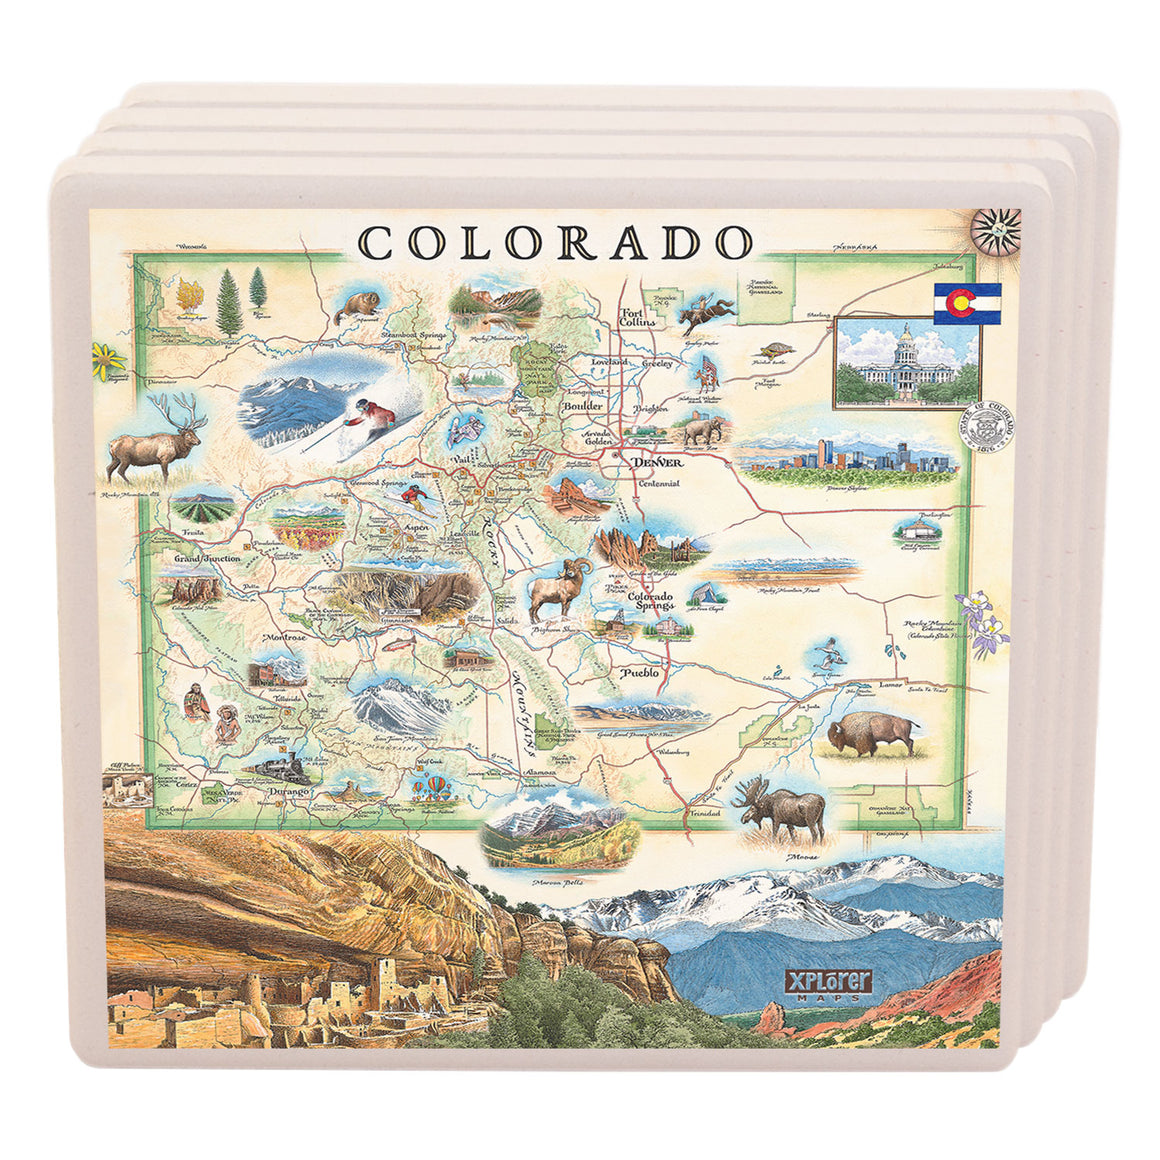 Colorado coasters